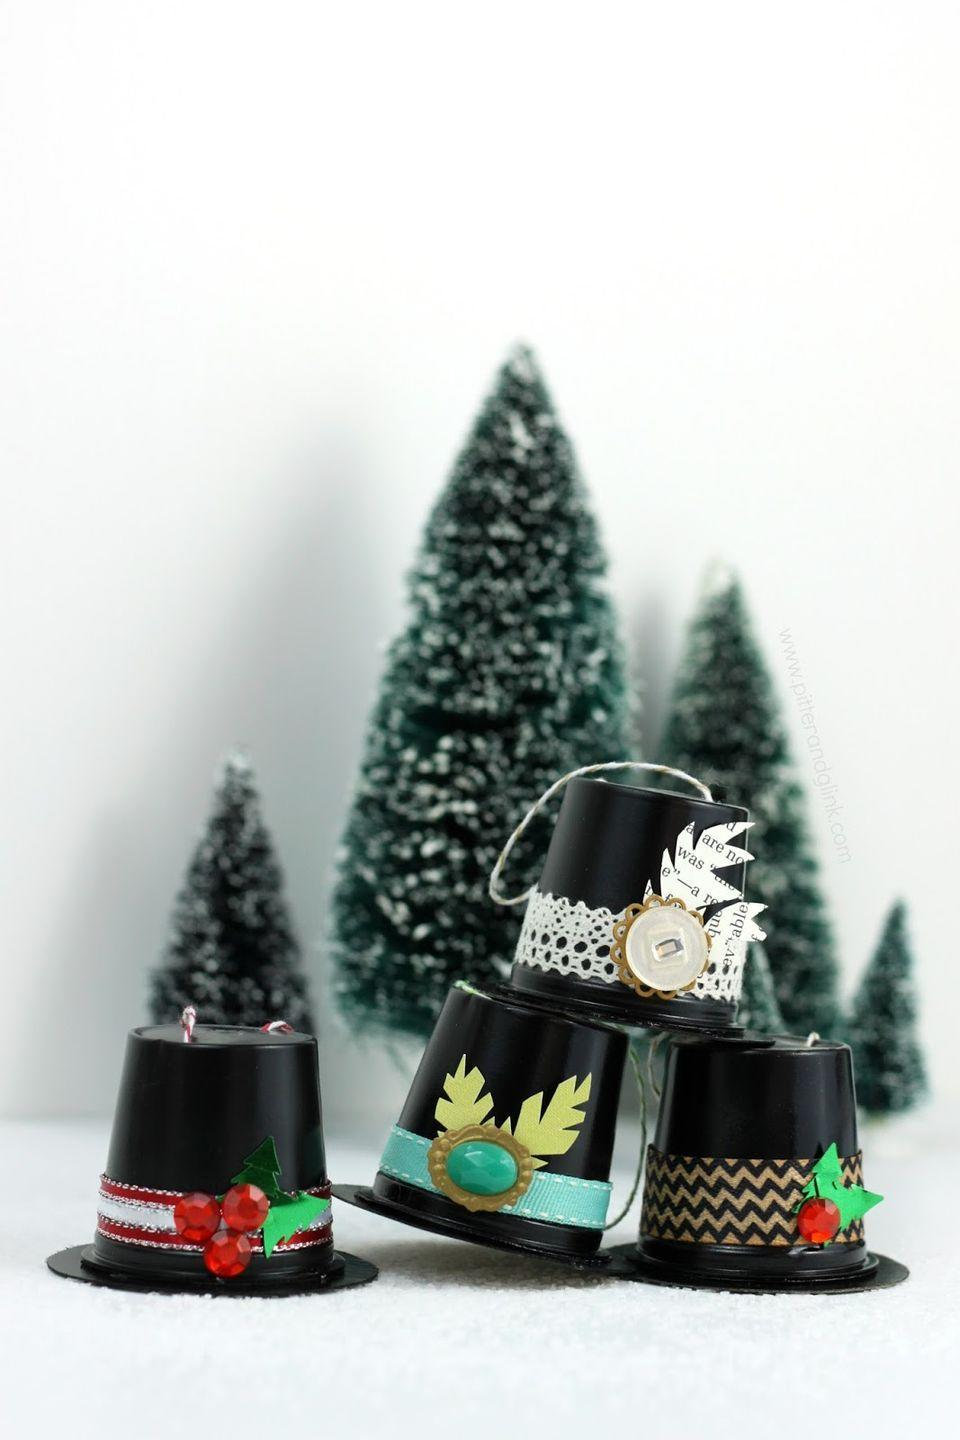 "<p>Turn K-cups into the cutest little to hats. </p><p><strong>Get the tutorial at <a href=""http://www.pitterandglink.com/2014/12/recycled-k-cup-snowman-hat-ornaments.html"" rel=""nofollow noopener"" target=""_blank"" data-ylk=""slk:Pitter and Glink"" class=""link rapid-noclick-resp"">Pitter and Glink</a>.</strong></p>"